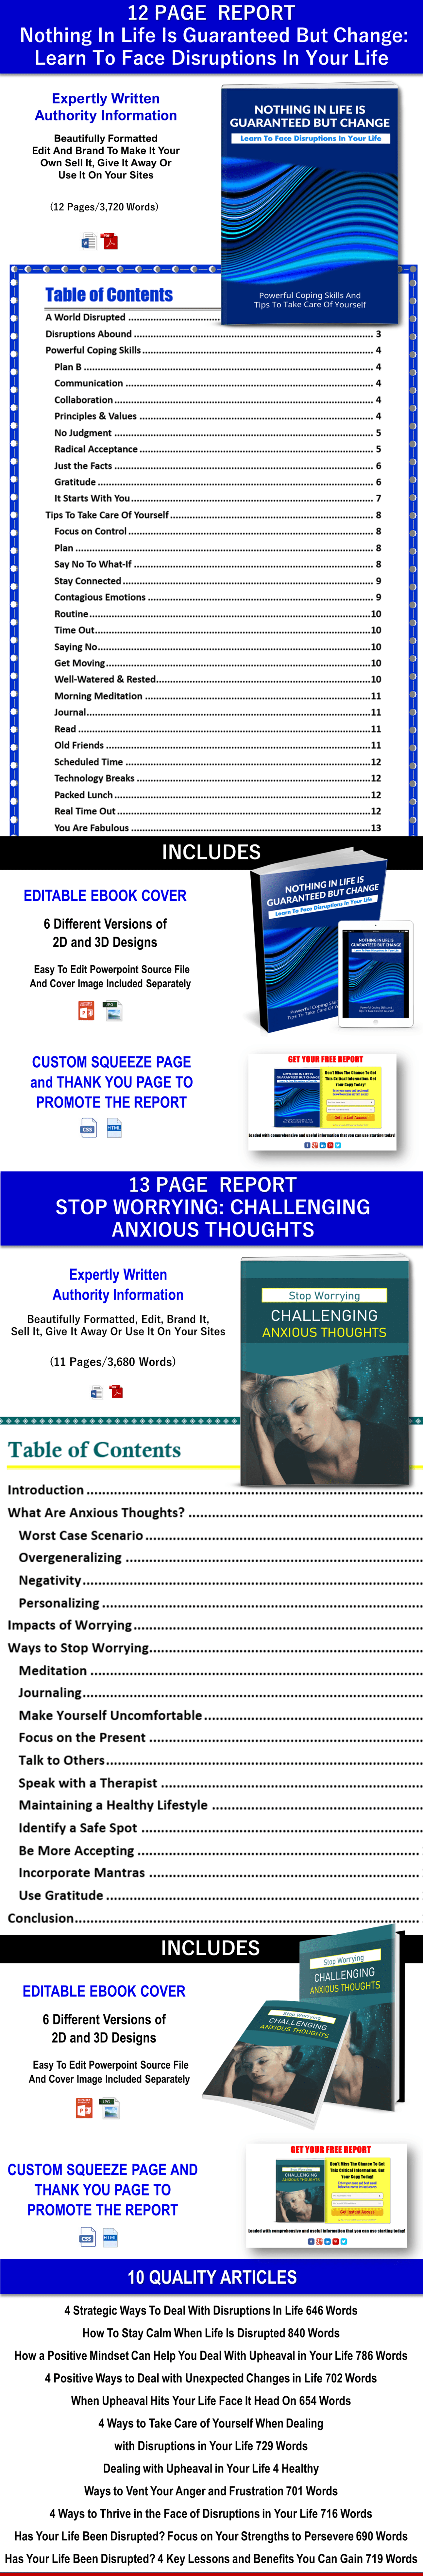 Nothing In Life Is Guaranteed But Change: Learn To Face Disruptions In Your Life Report and Stop Worrying: Challenging Anxious Thoughts And Articles With PLR Rights